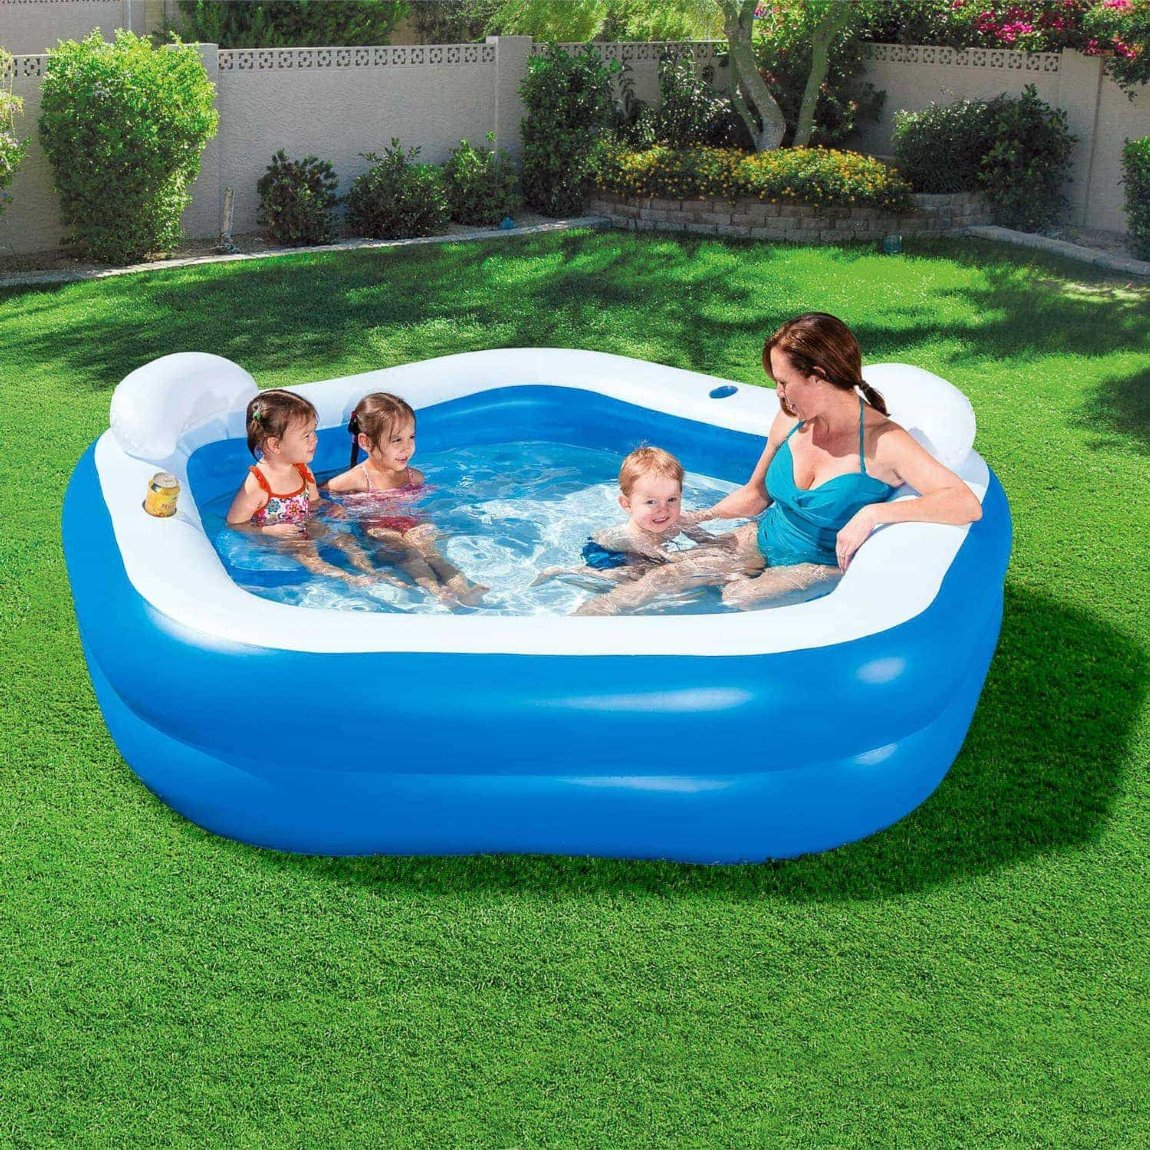 Bestway Inflatable Garden Pool From B&M Toys